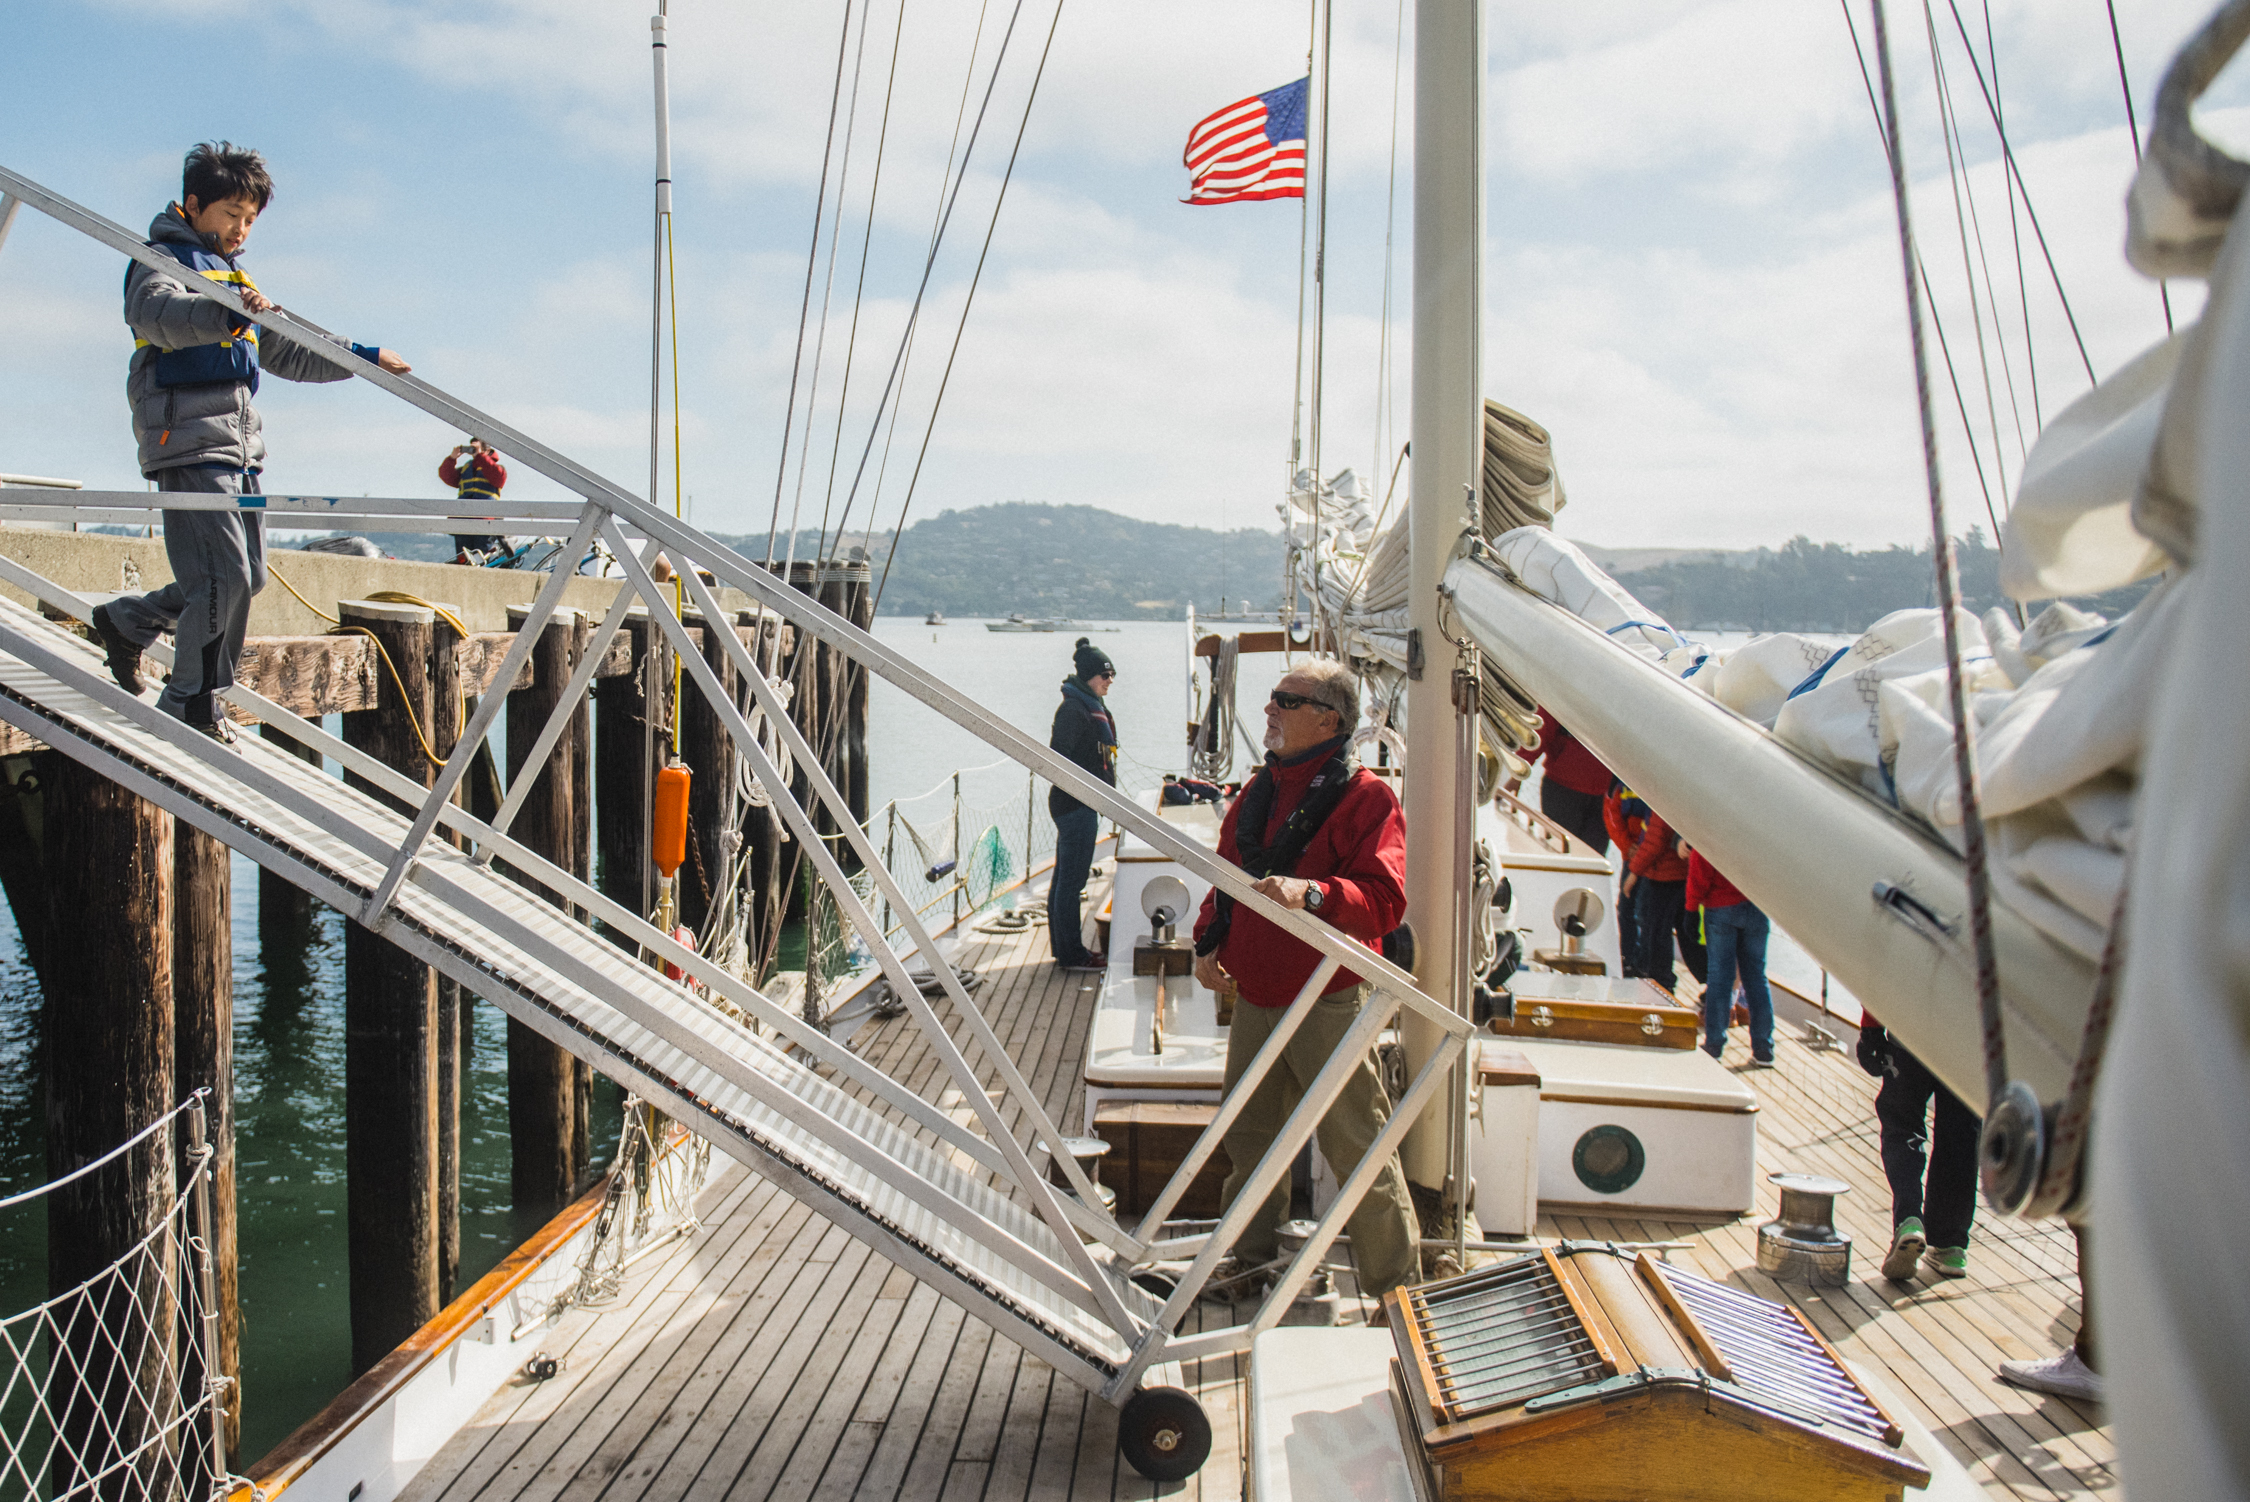 Call of the Sea - San Francisco - Another Look - 05.06.16-4.jpg